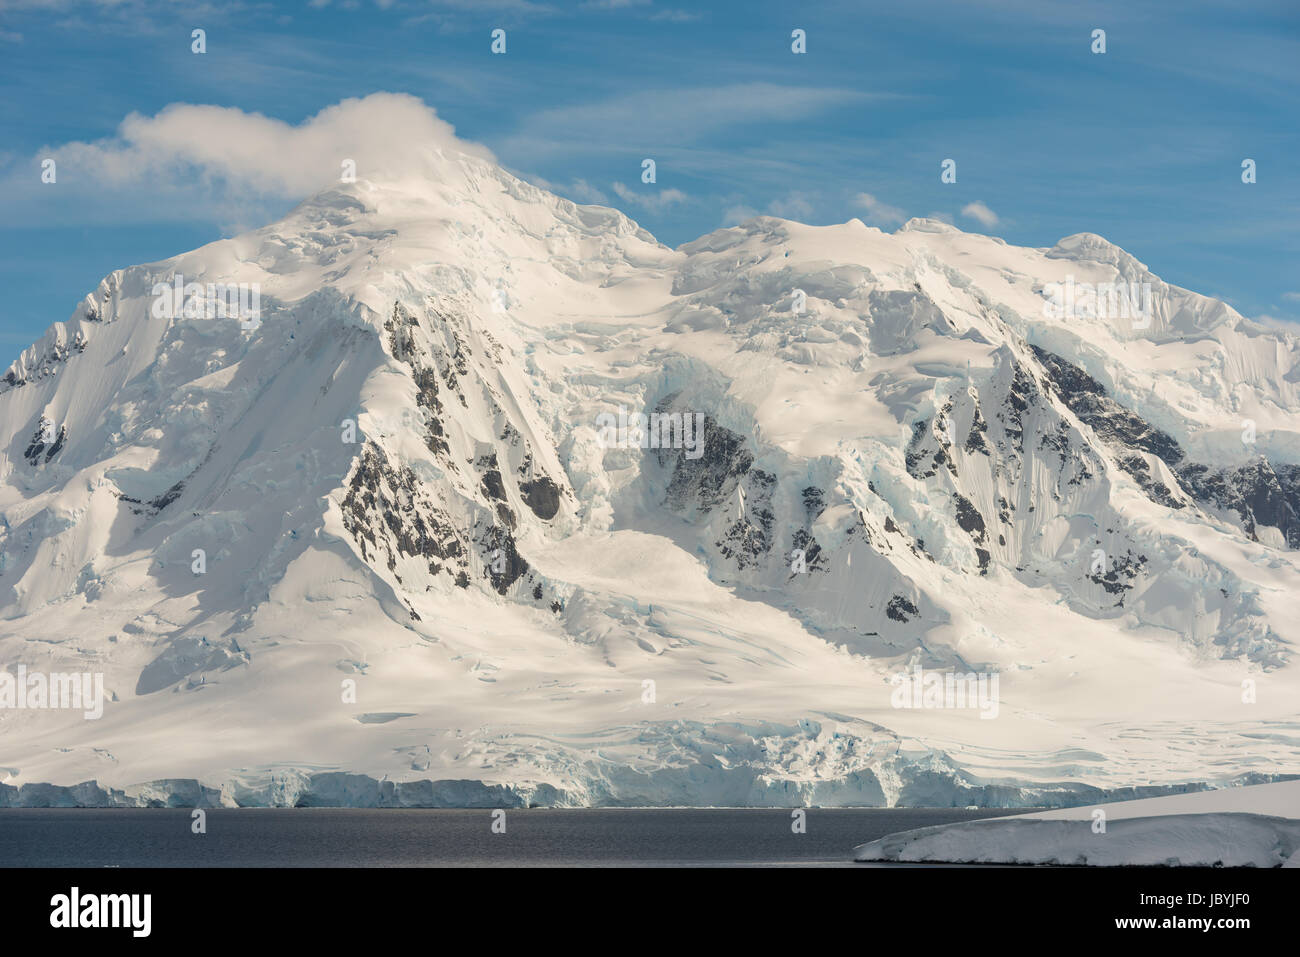 Mountains in Antarctica - Stock Image